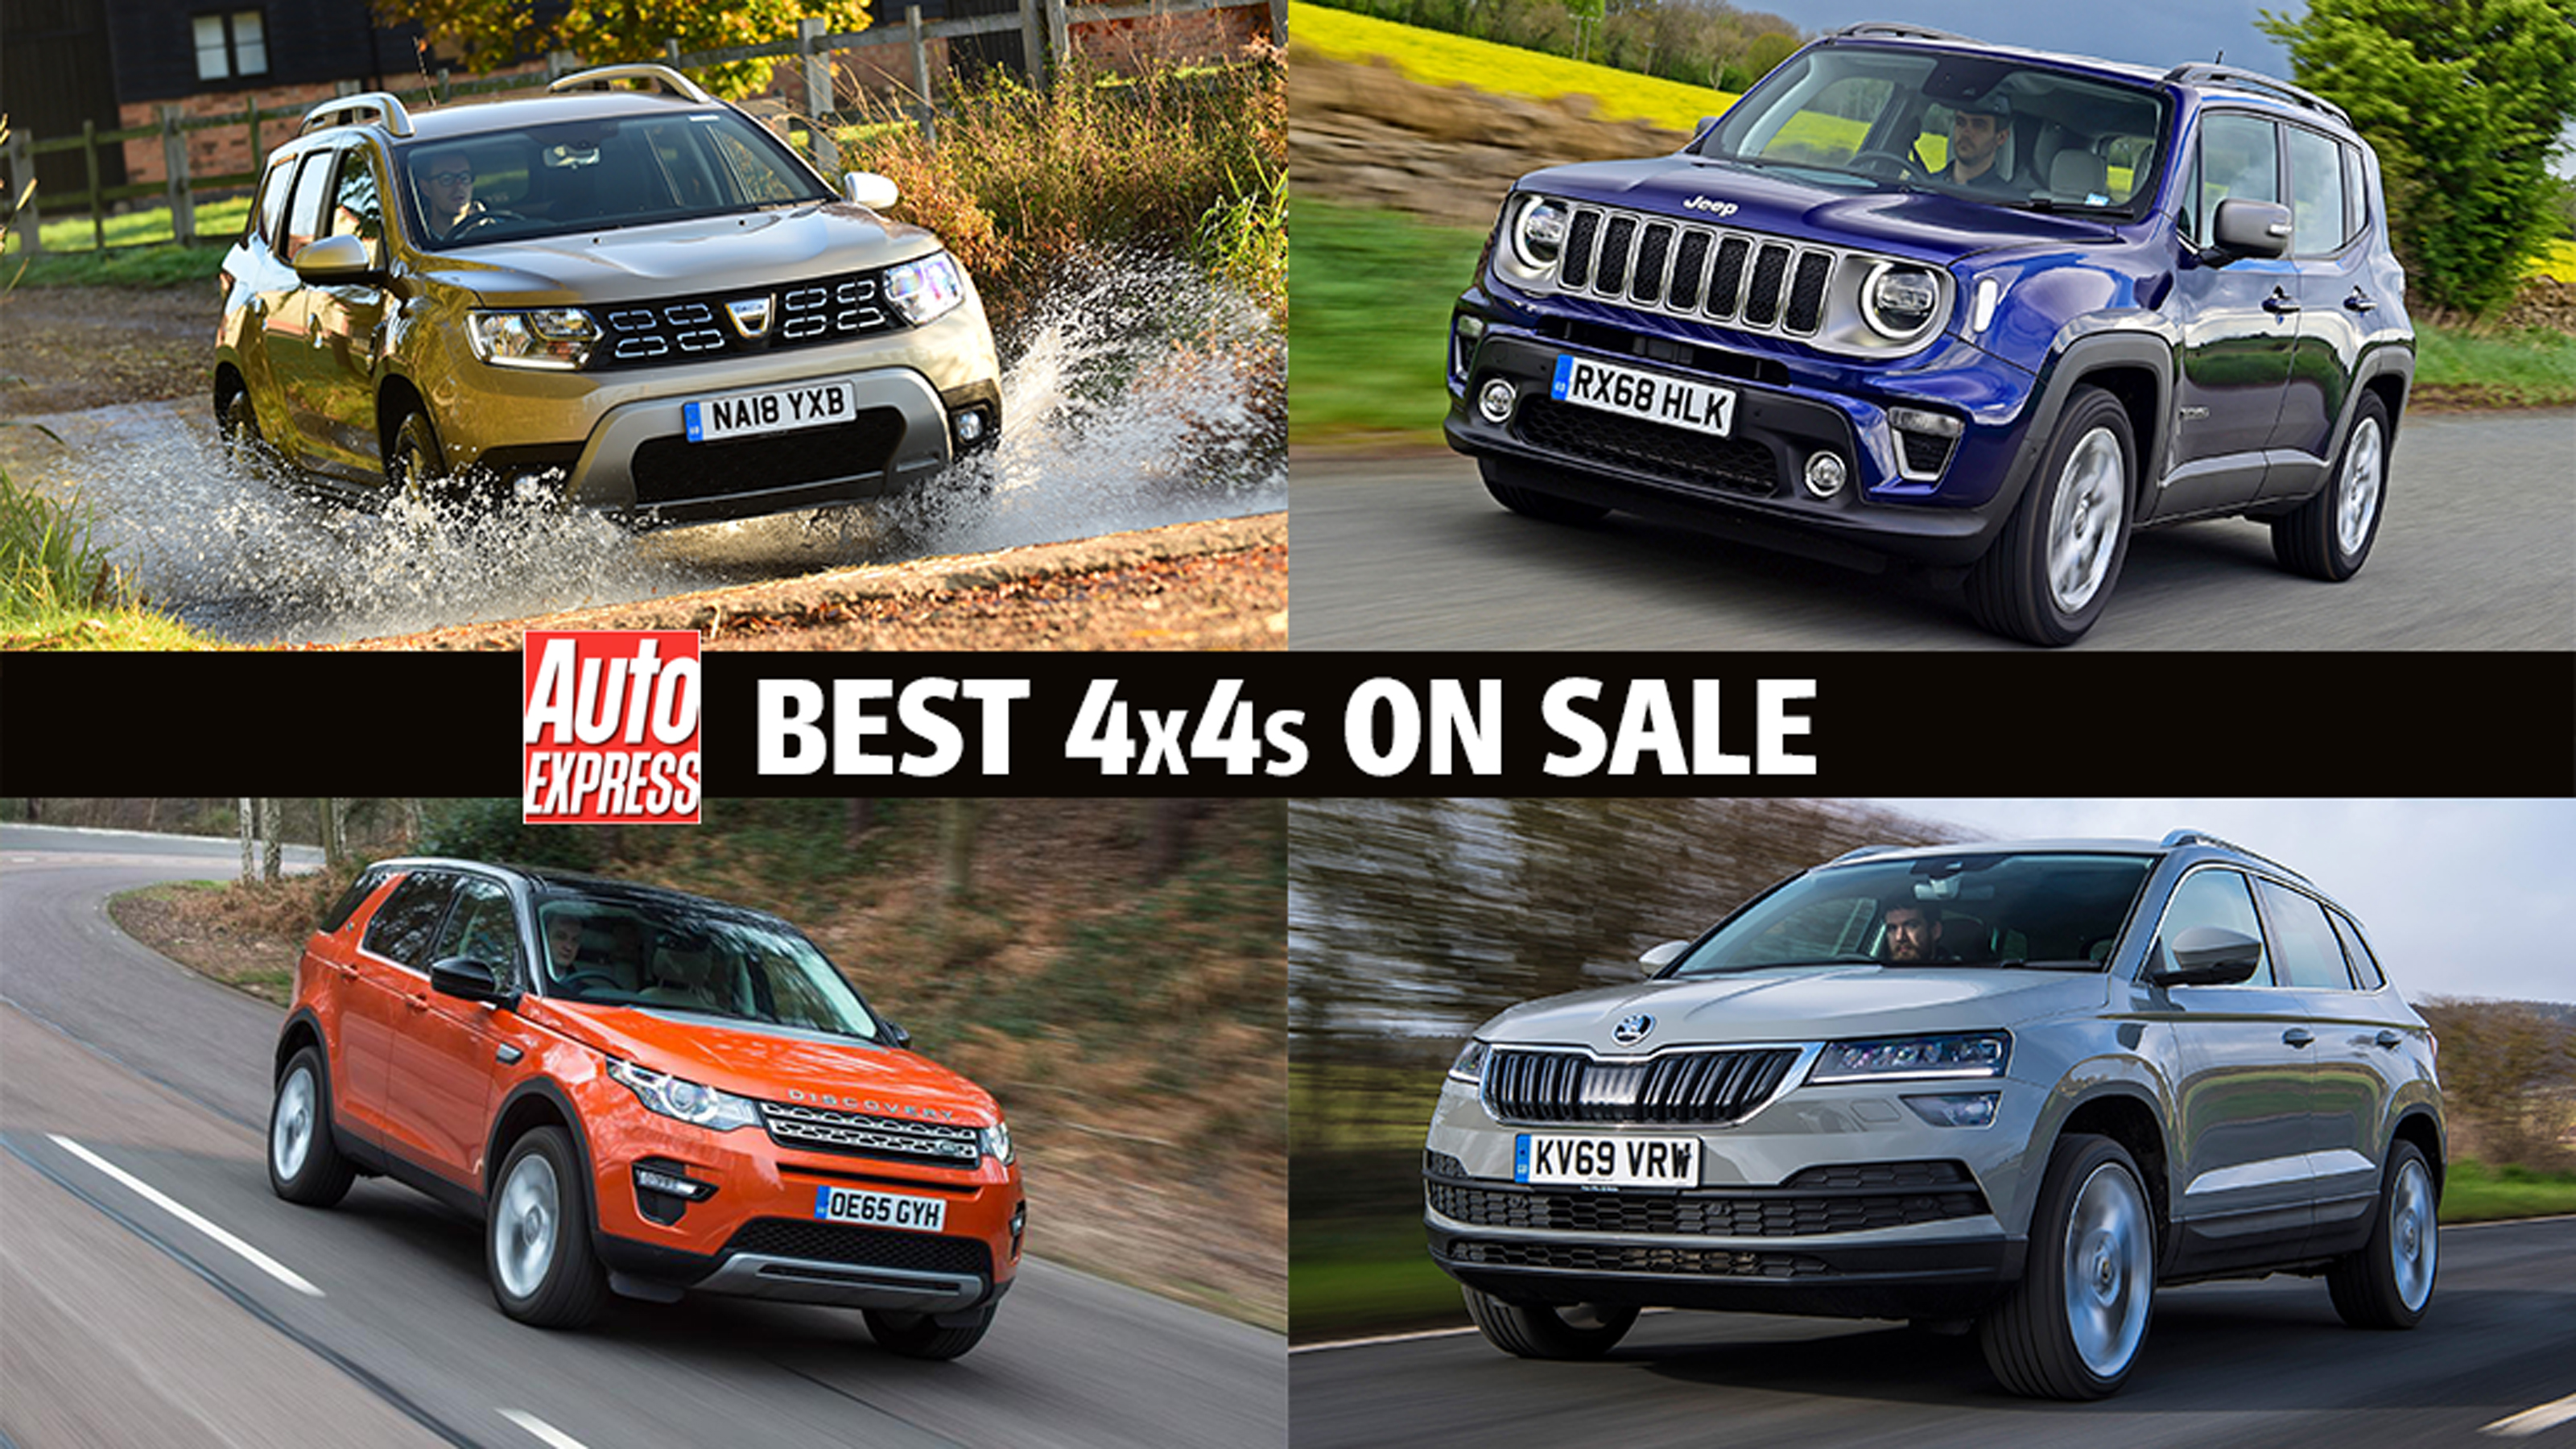 Best 4x4s To Buy 2021 Auto Express